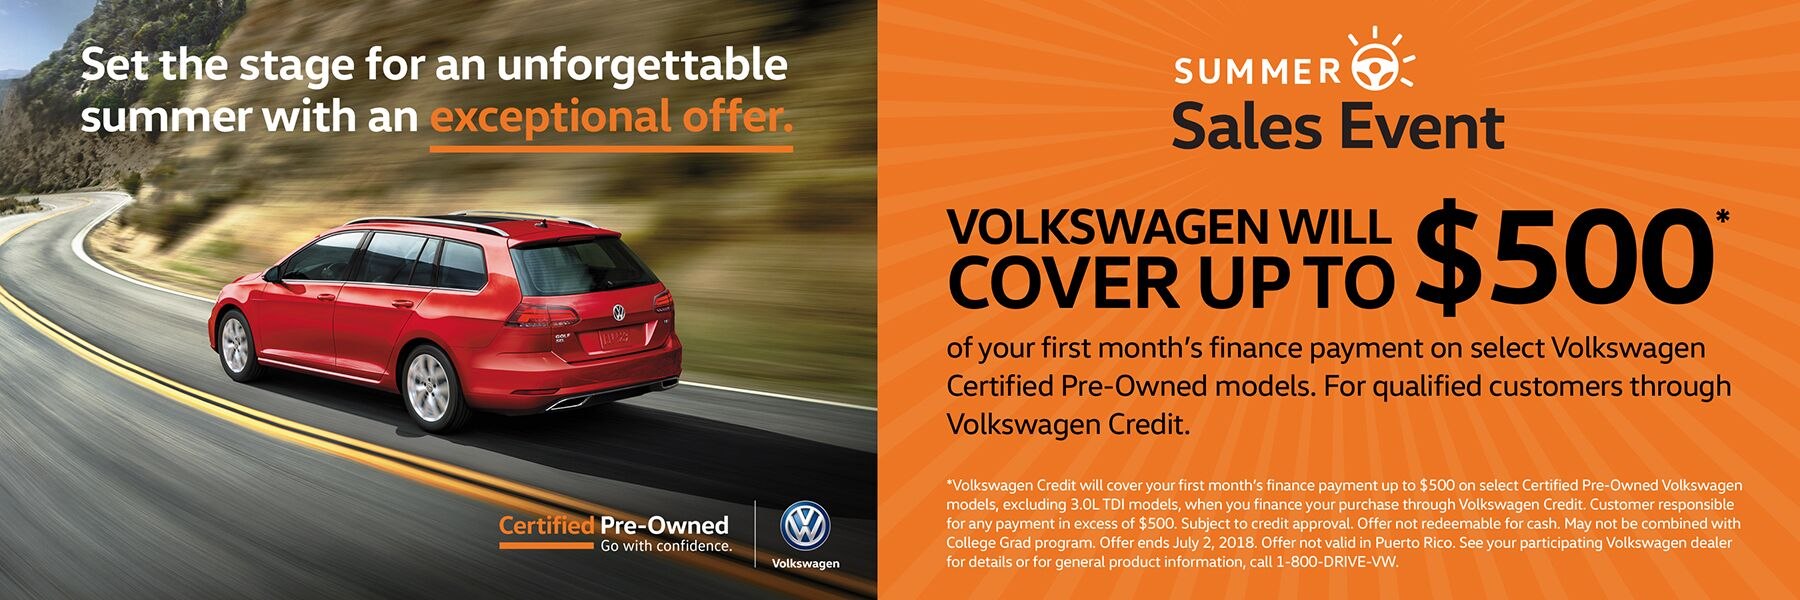 Volkswagen Certified Pre-Owned in Wellesley, MA